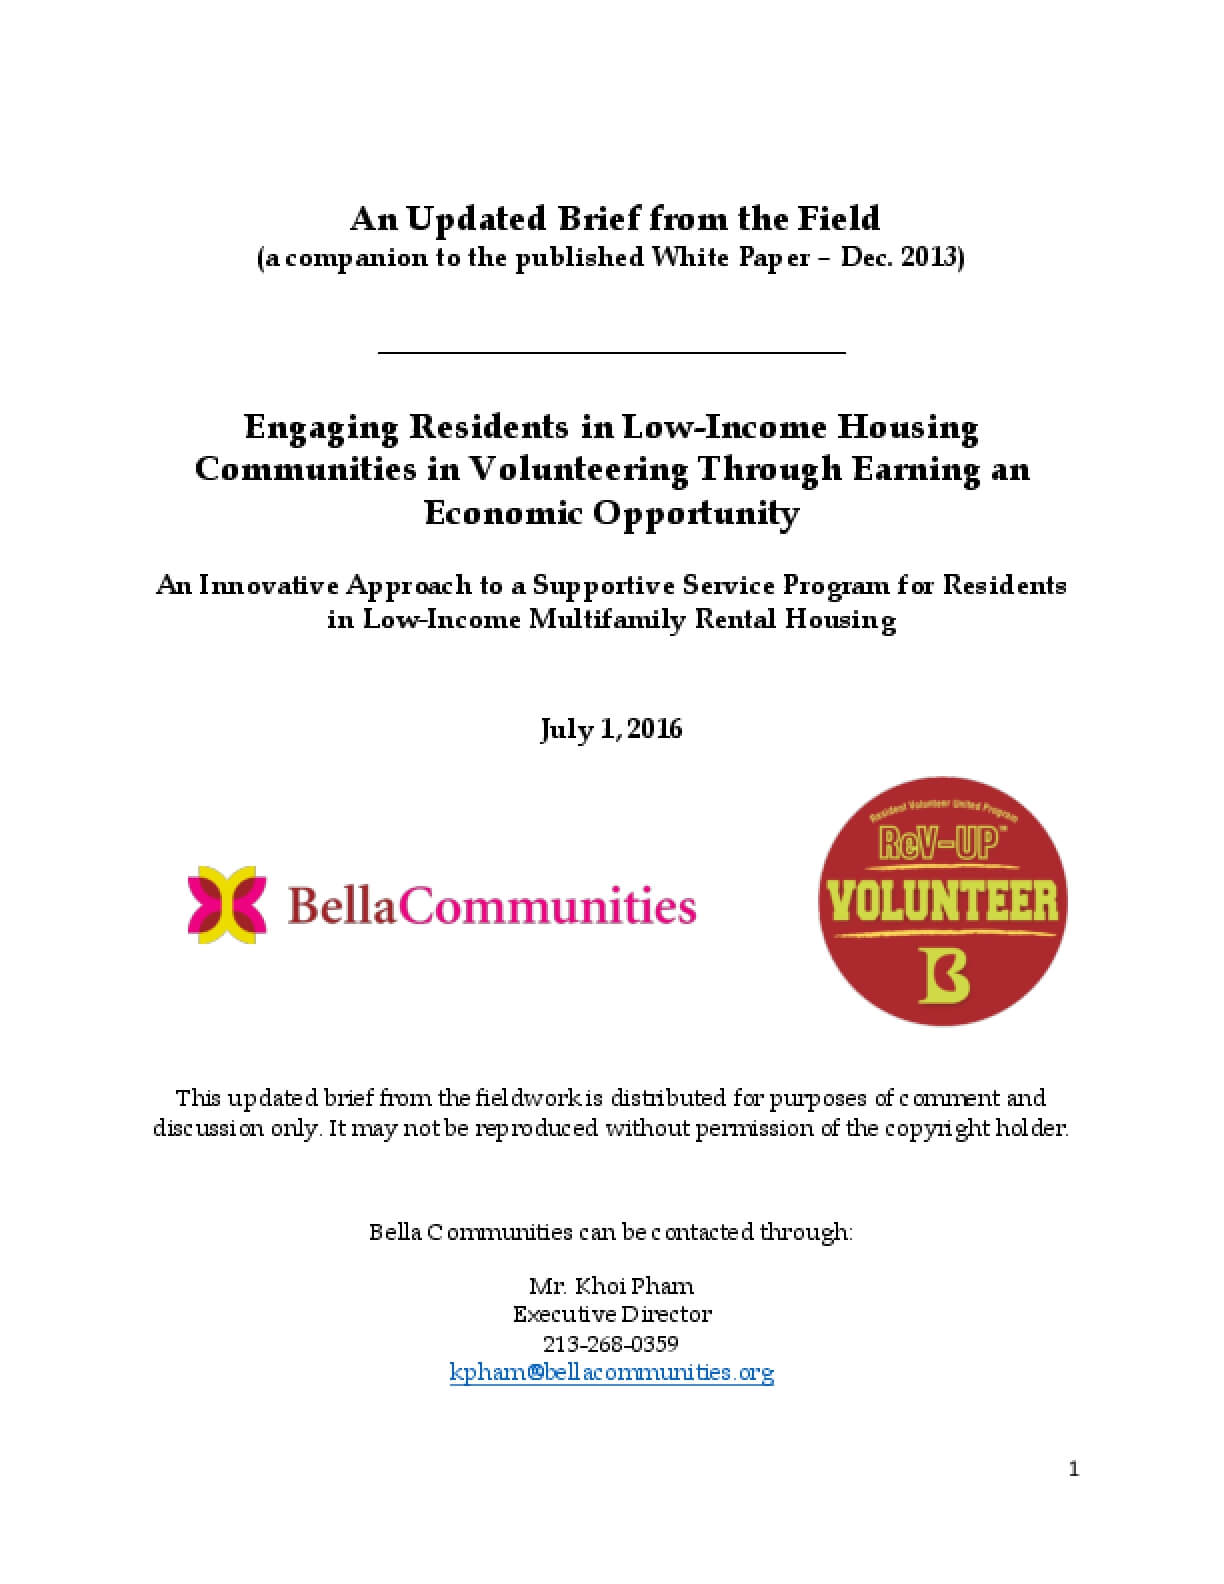 An Updated Brief from the Field (a companion to the published White Paper – Dec. 2013) Engaging Residents in Low-Income Housing Communities in Volunteering Through Earning an Economic Opportunity